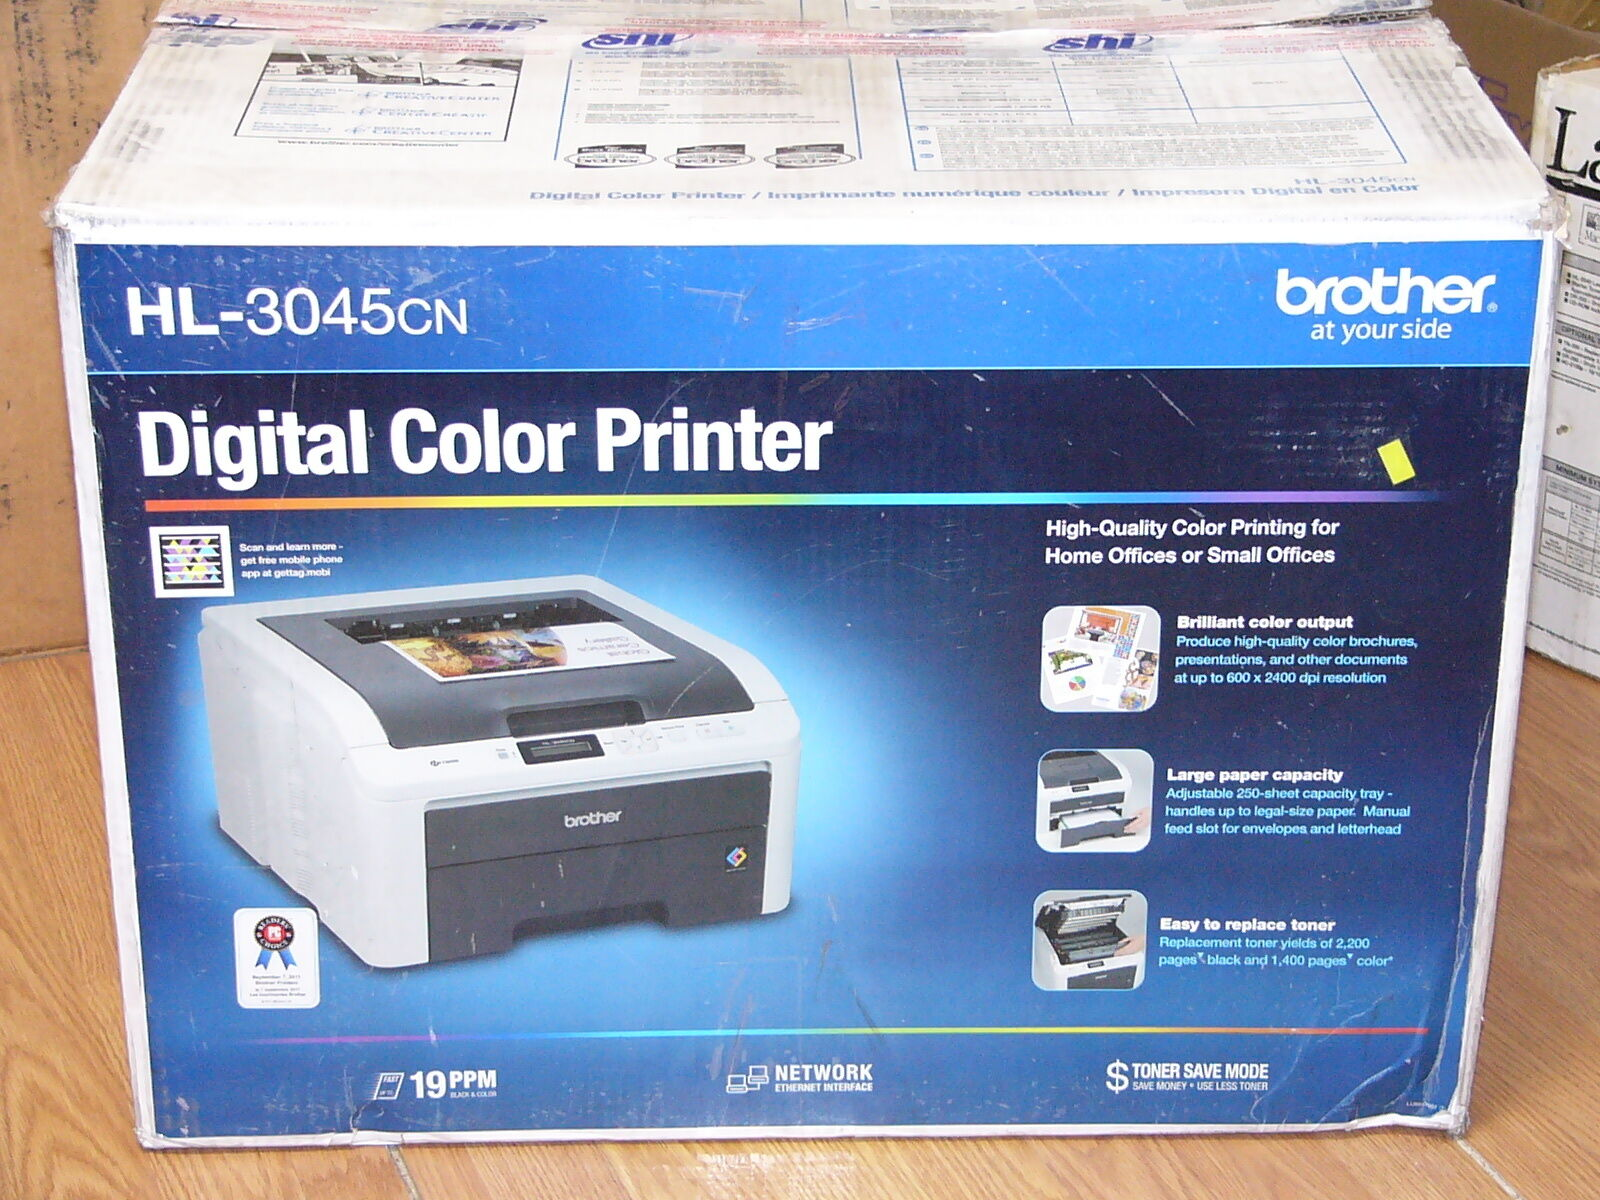 Brother HL-3045CN Printer Drivers for Windows XP